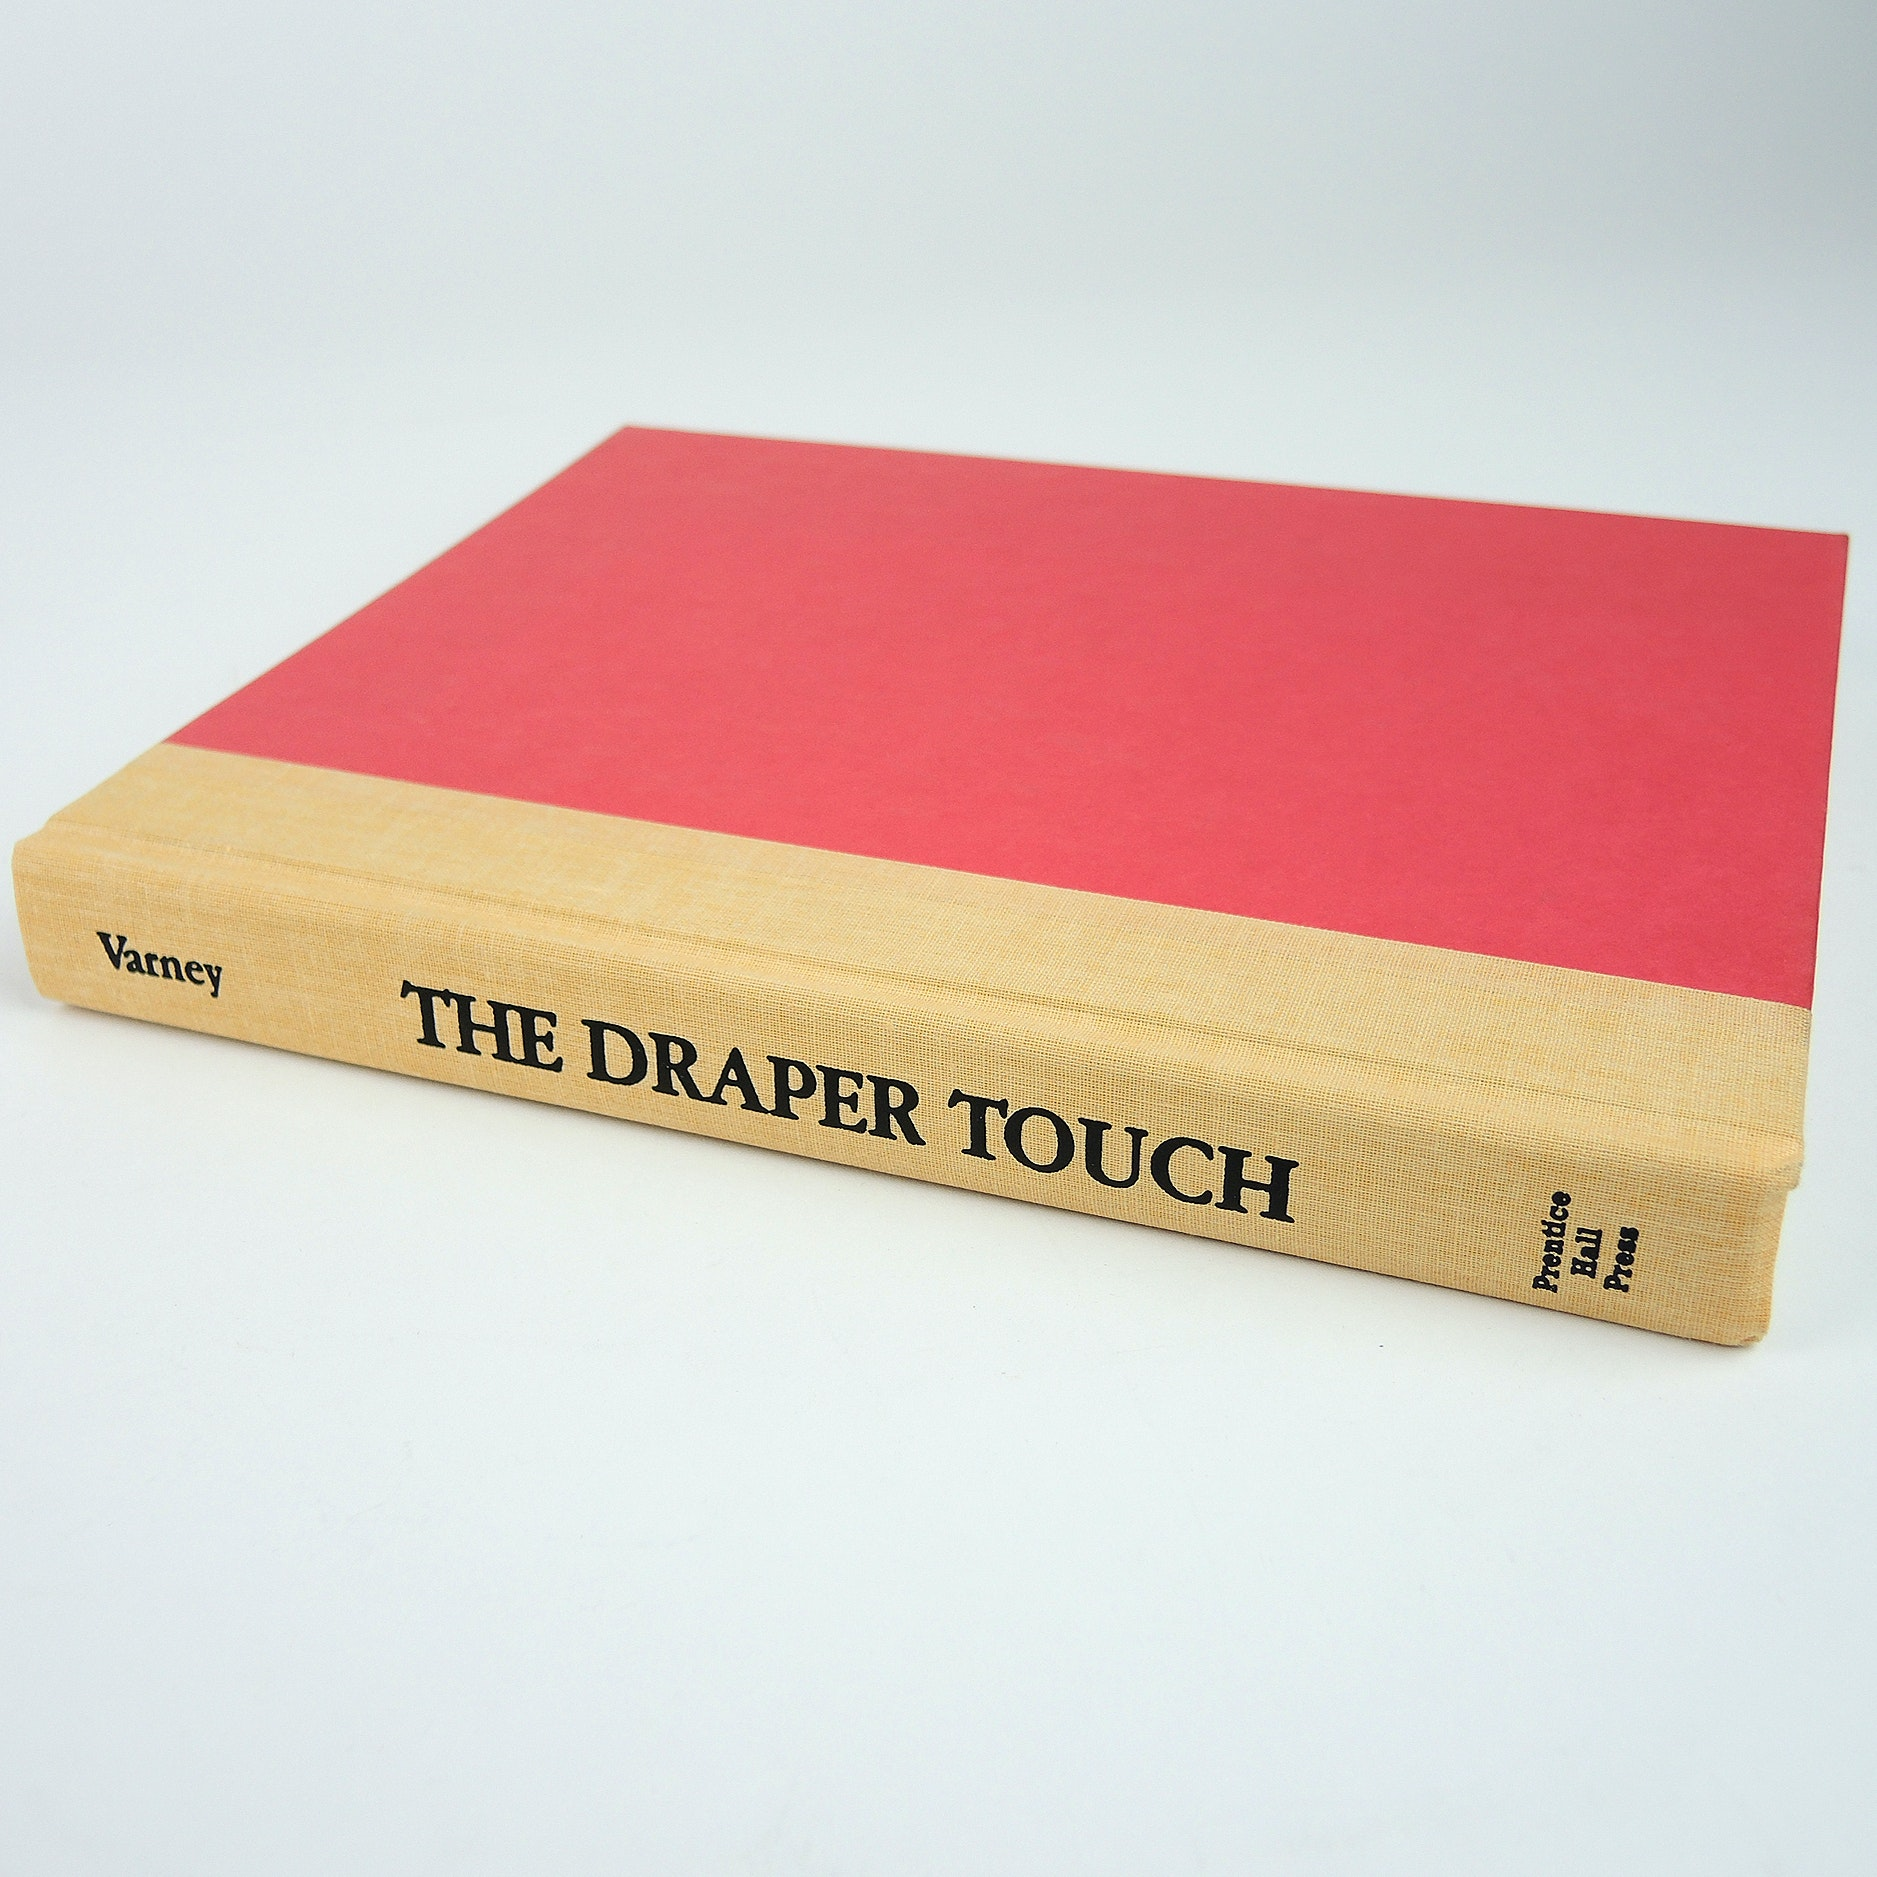 "Signed Copy of ""The Draper Touch"" by Carlton Varney"